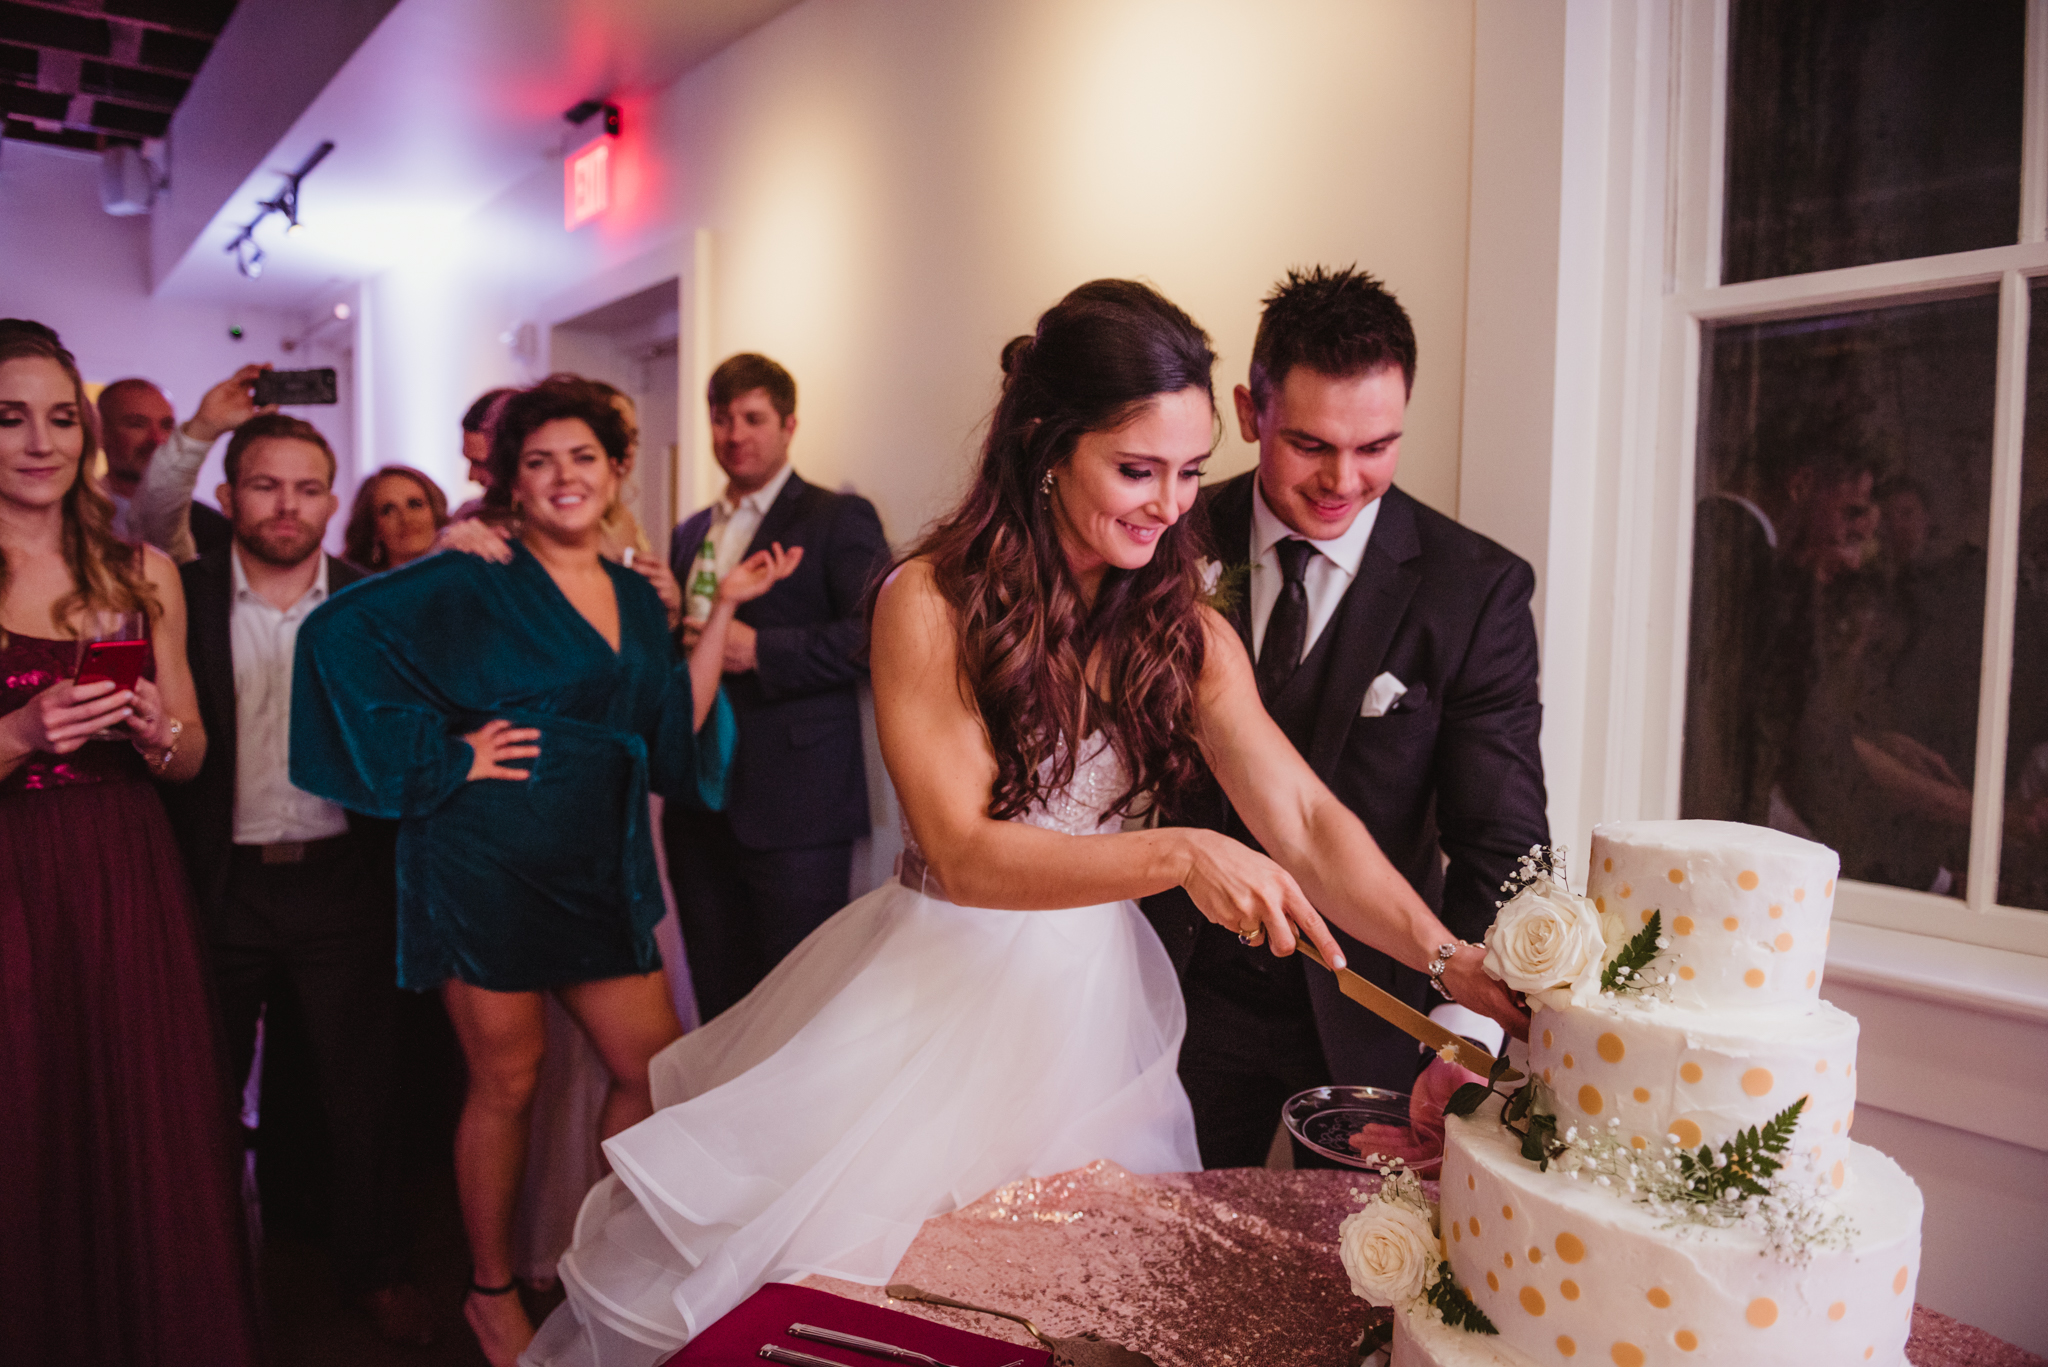 Raleigh-wedding-photographer-bride-and-groom-cut-the-cake-rose-trail-images.jpg